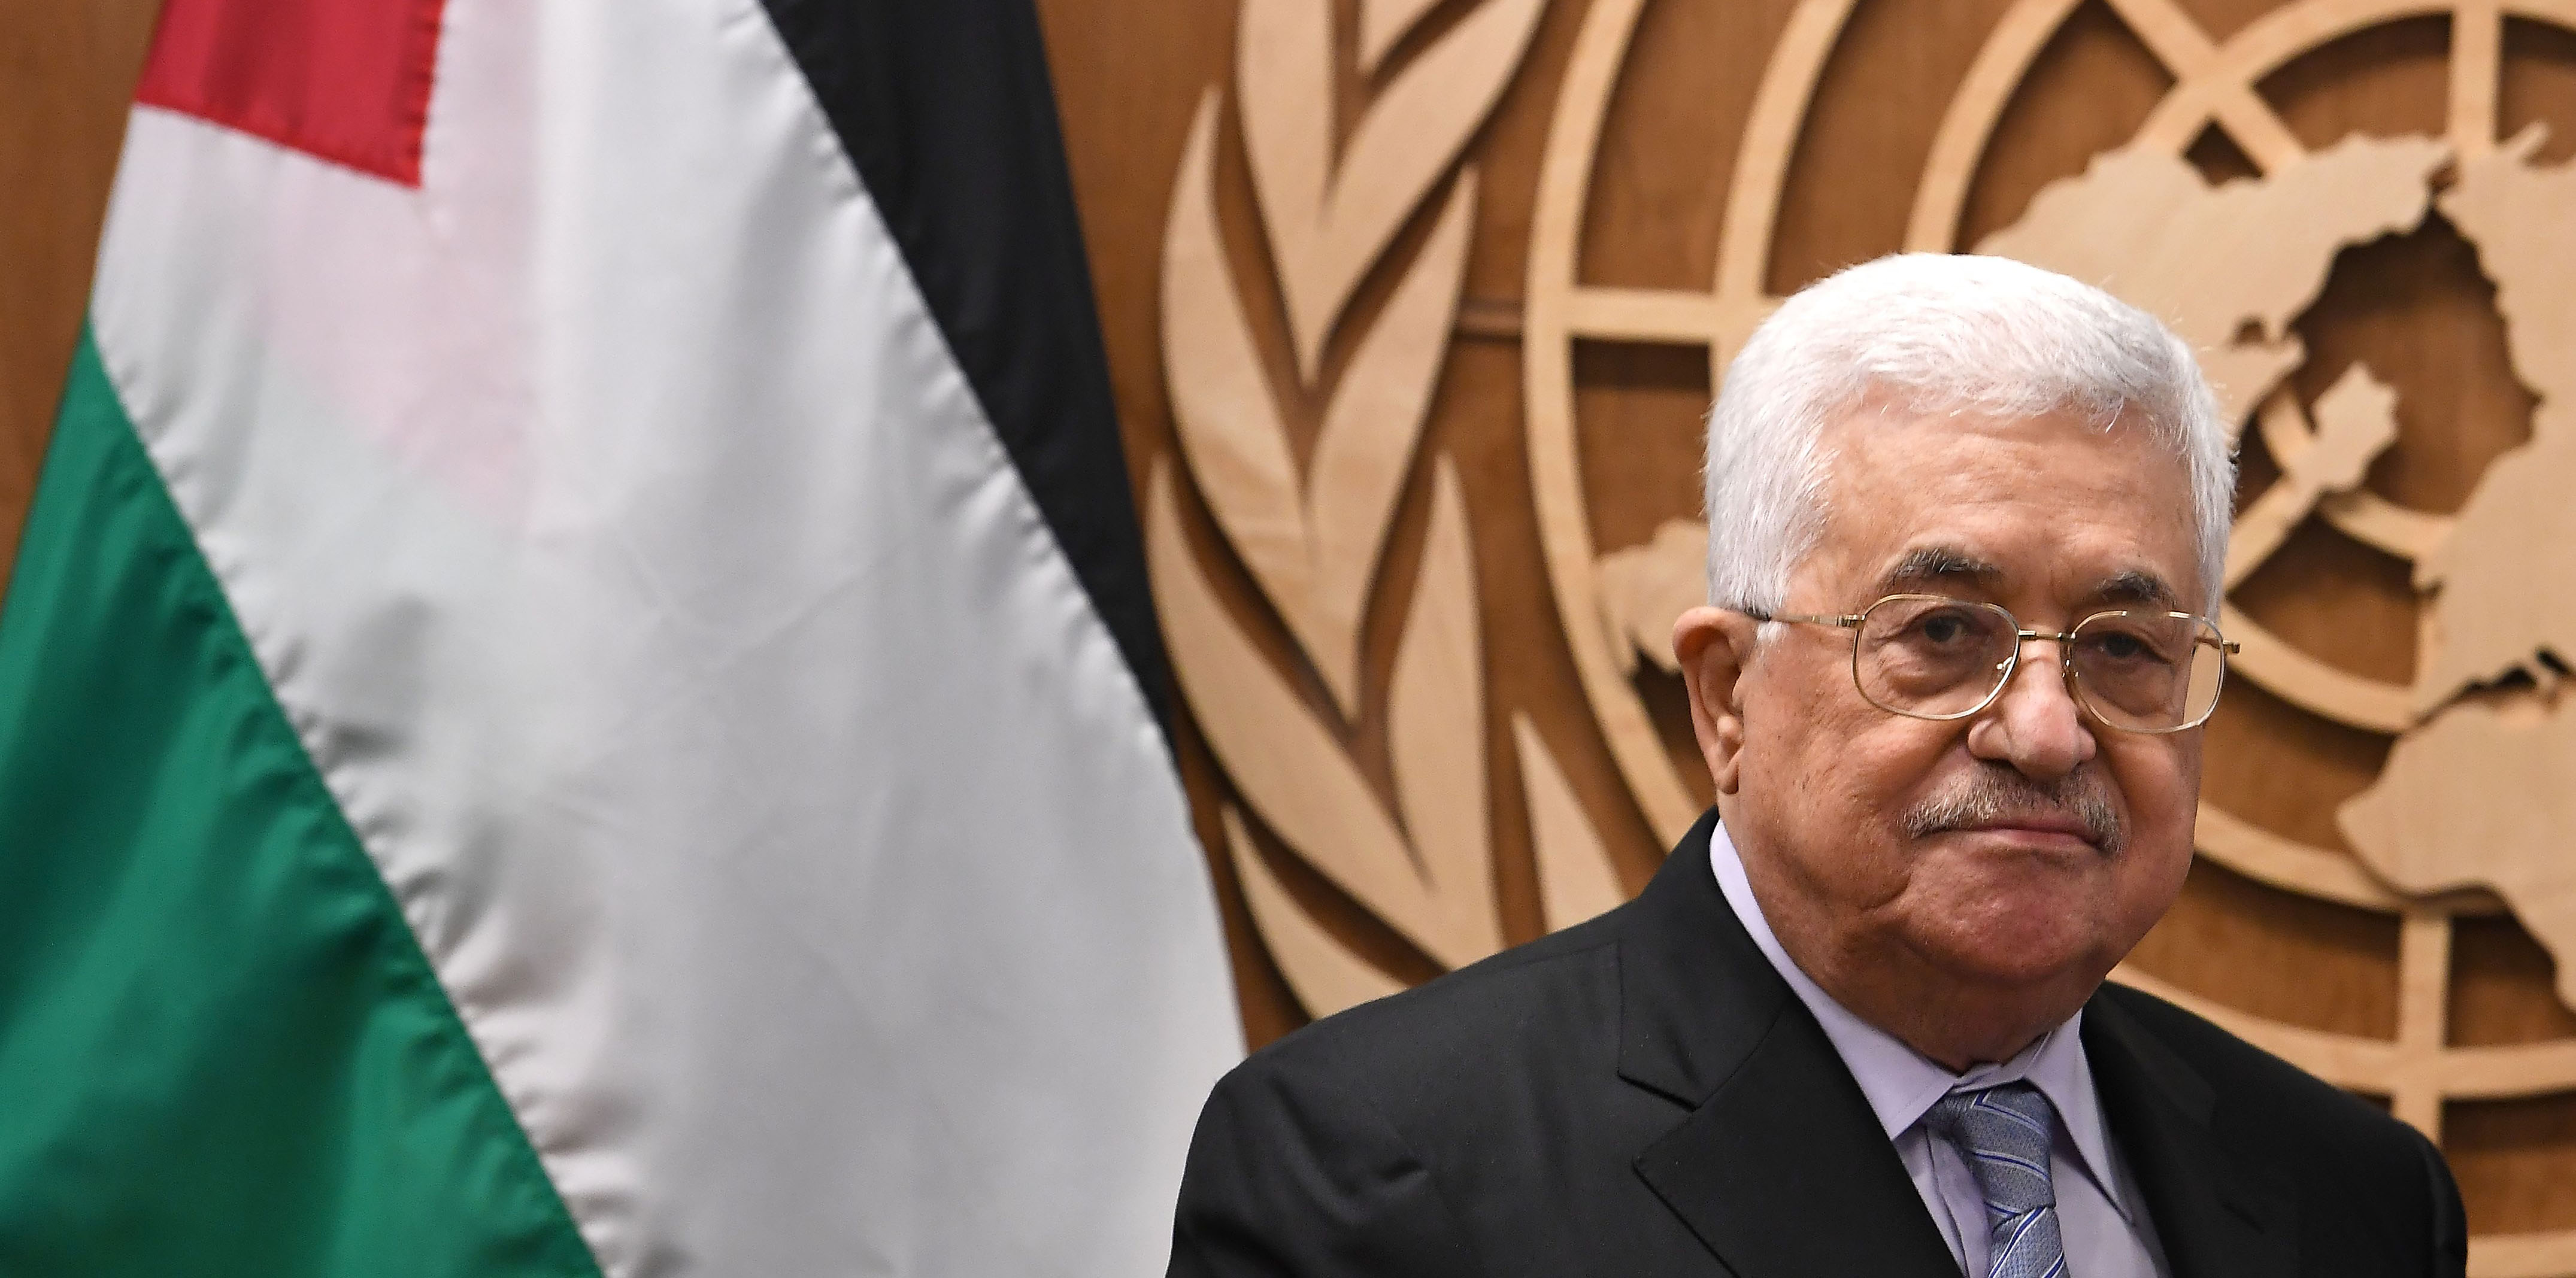 The Palestinian president's predicament